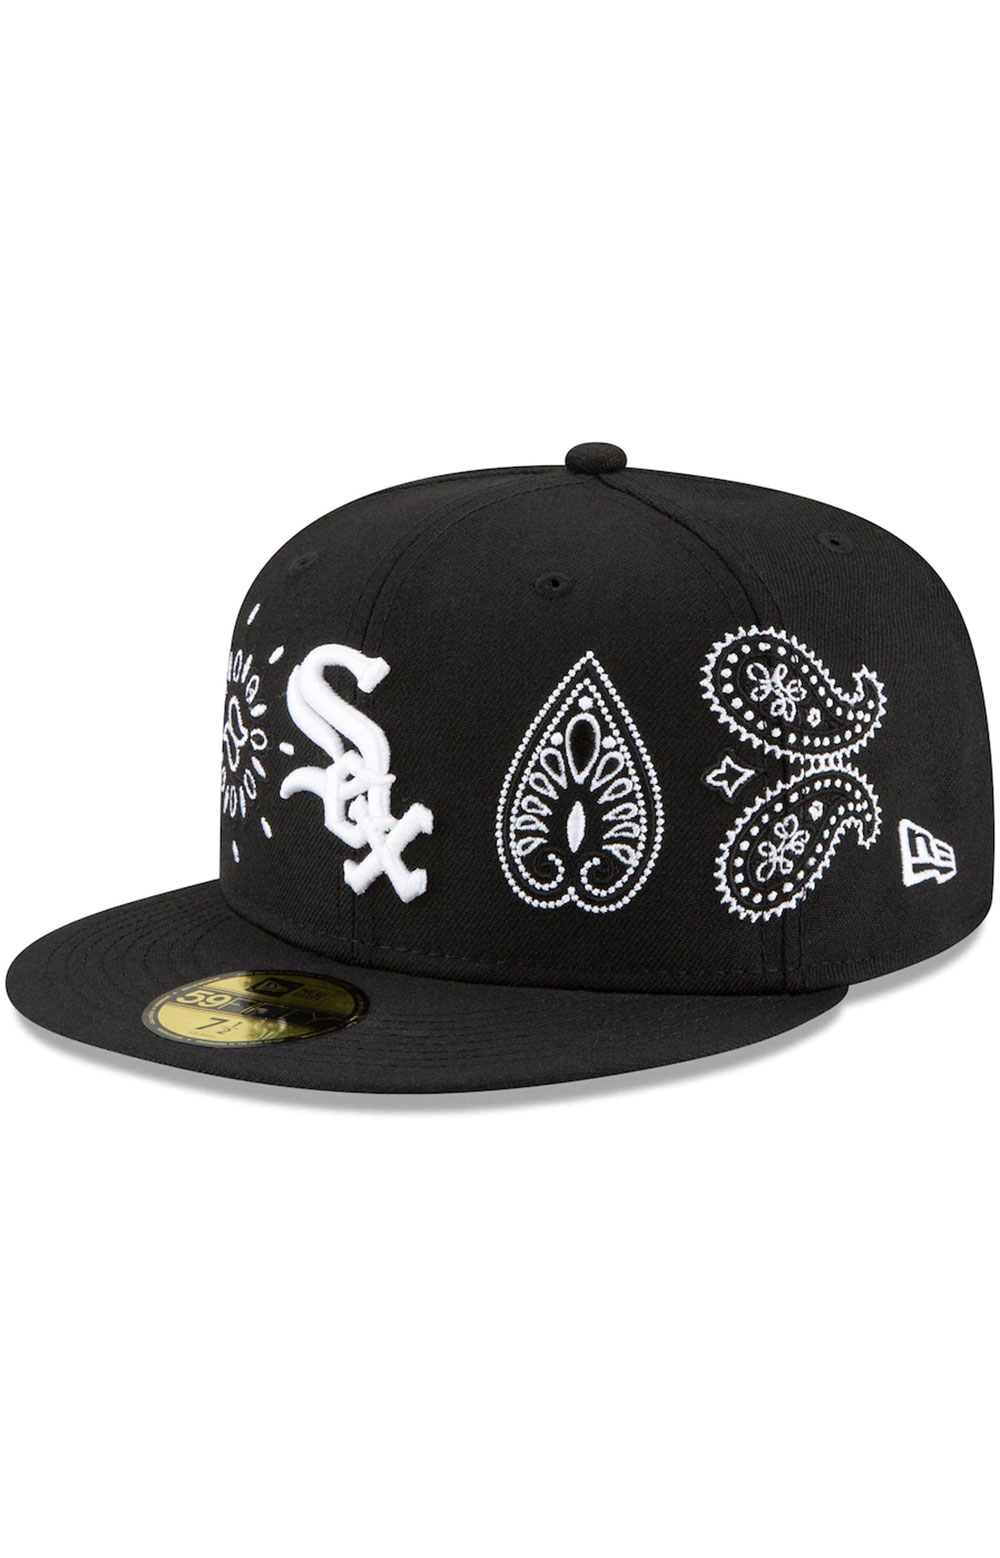 Chicago White Sox Paisley Elements 59Fifty Fitted Hat - Black